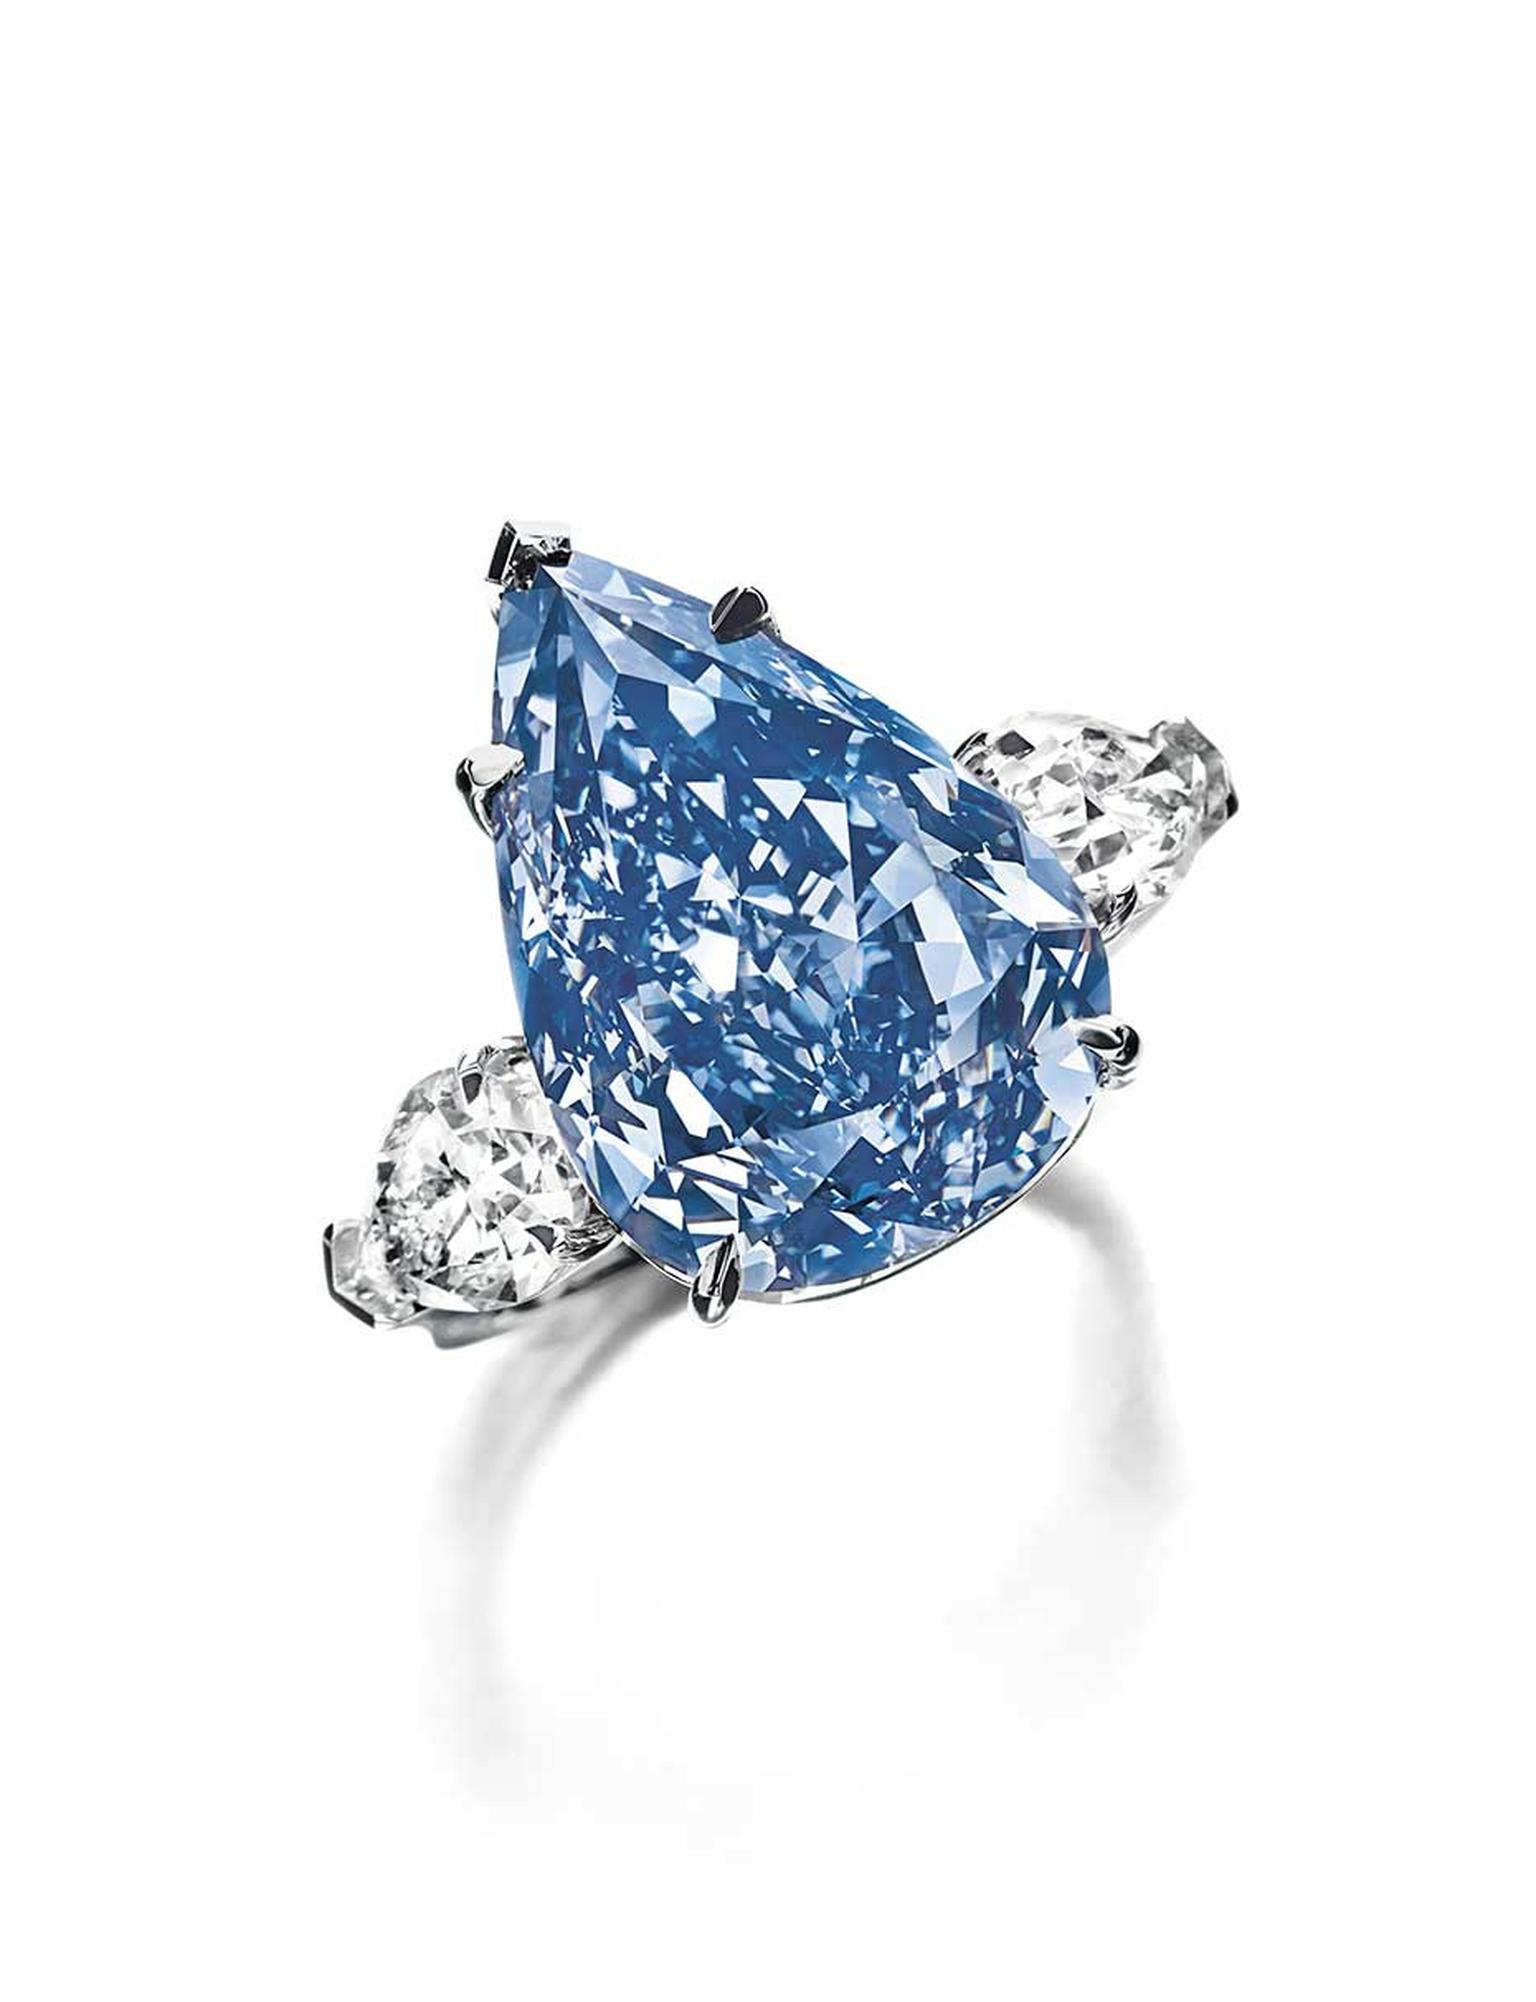 'The Winston Blue' diamond set a new world auction record for the price per carat for a blue diamond at Christie's Geneva